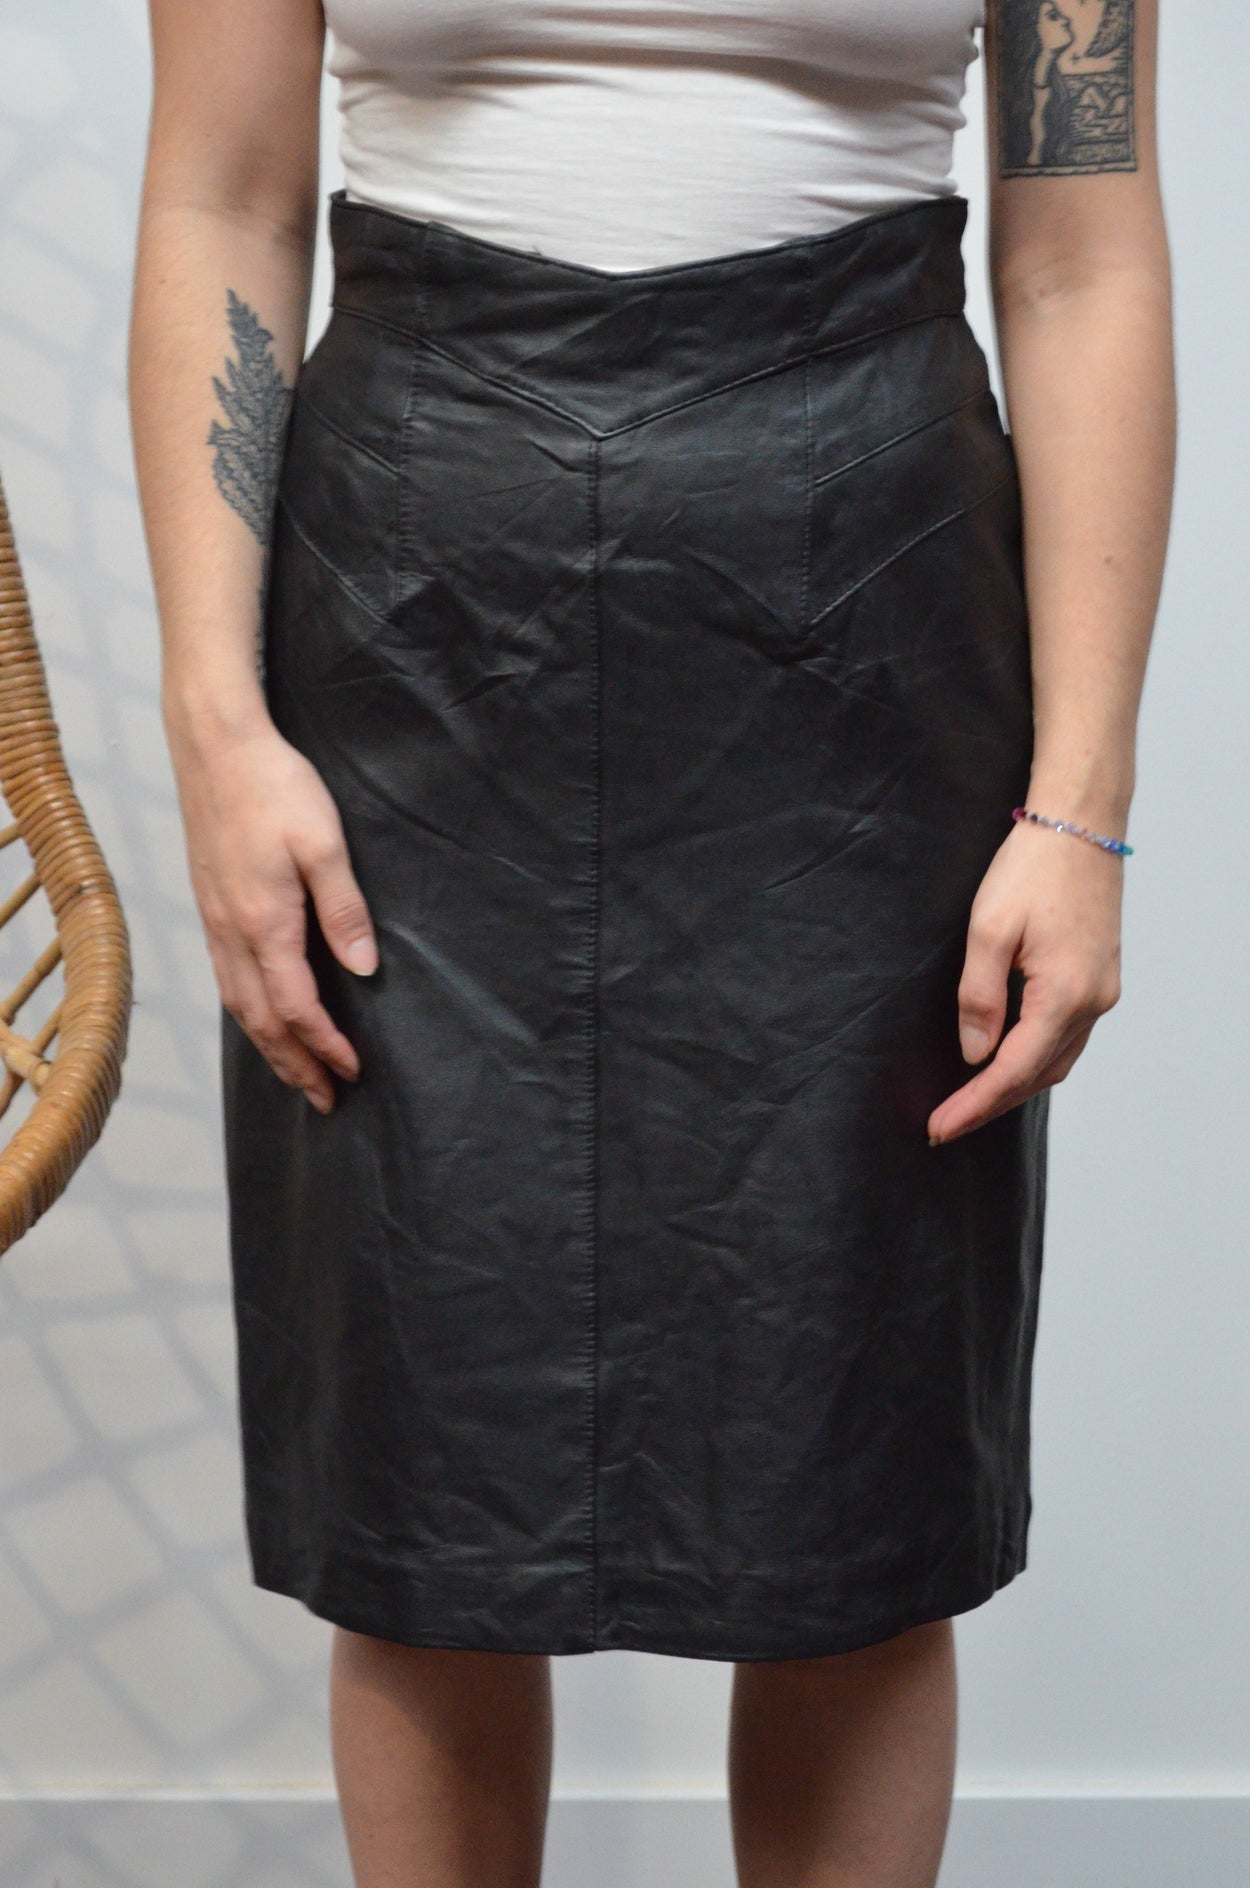 Vintage Black Leather Pencil Skirt - SIZE 8